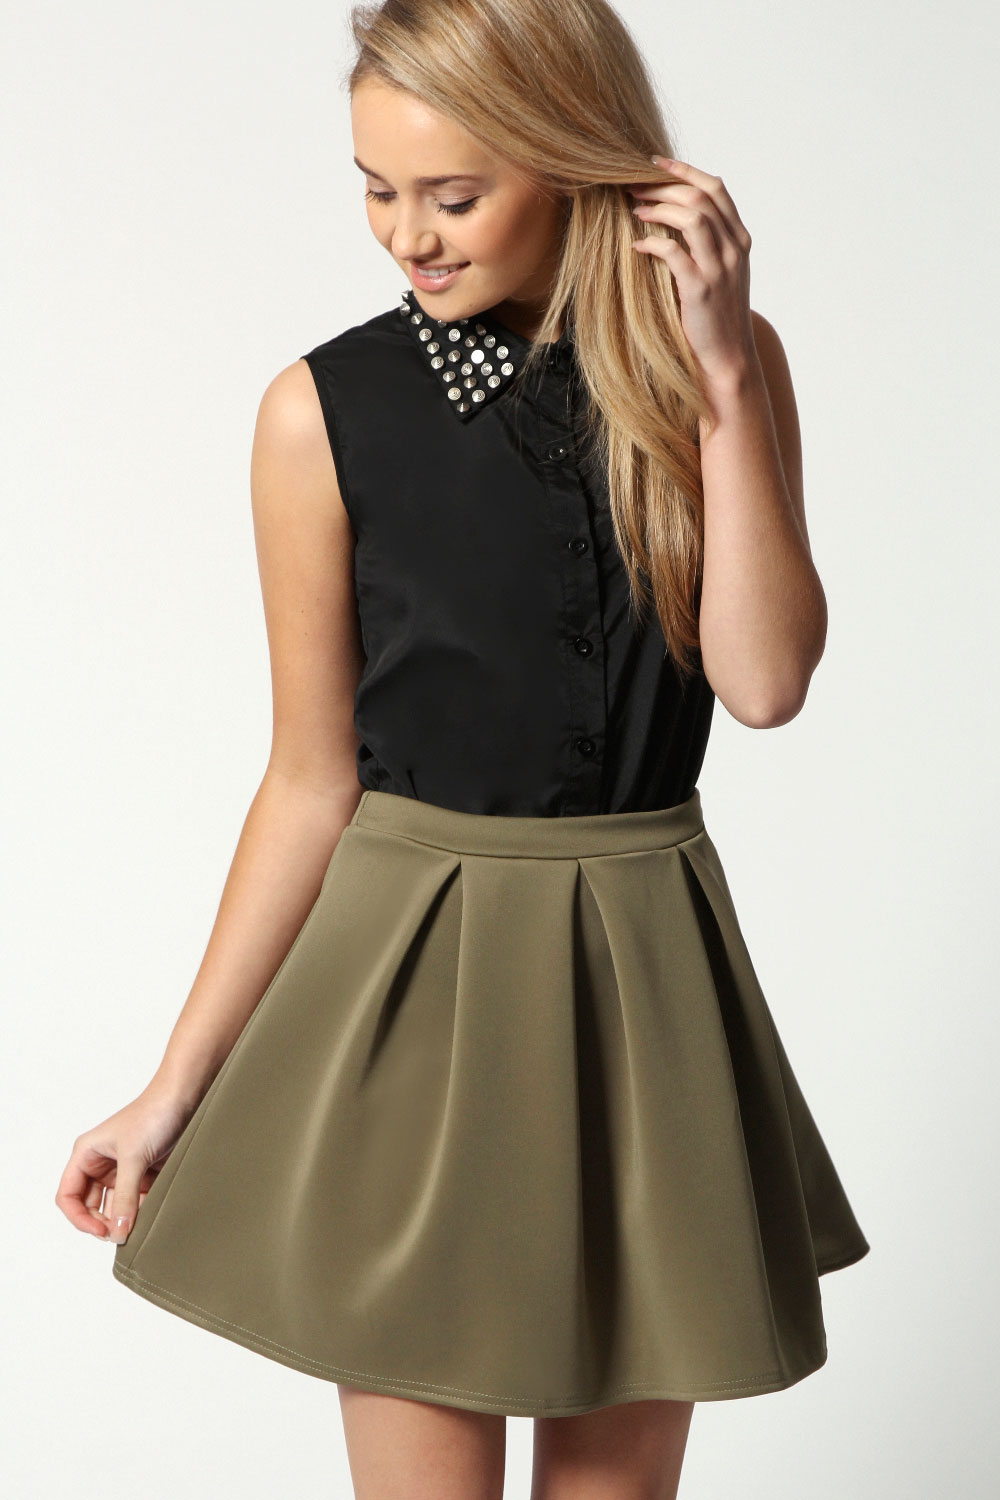 Boohoo-Kate-Box-Pleat-Skater-Hip-Length-Skirt thumbnail 5